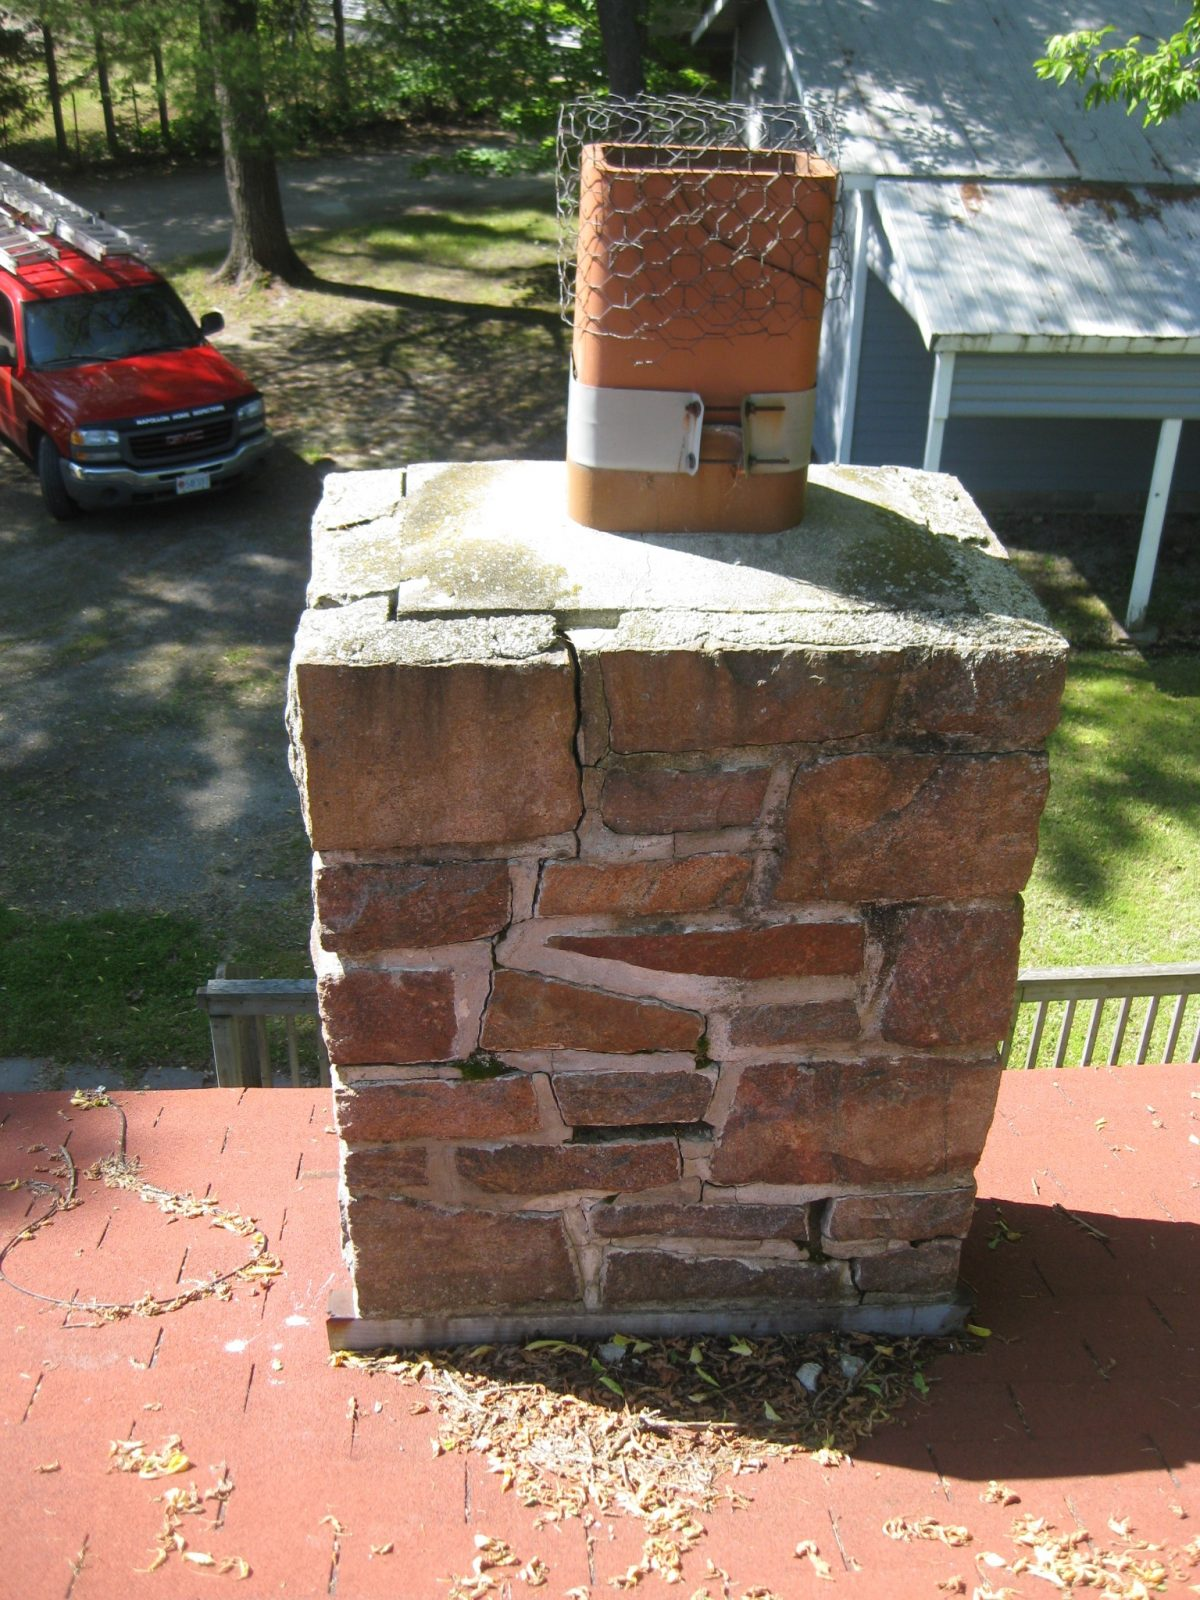 Structural damage to chimney.  Requires rebuilding.